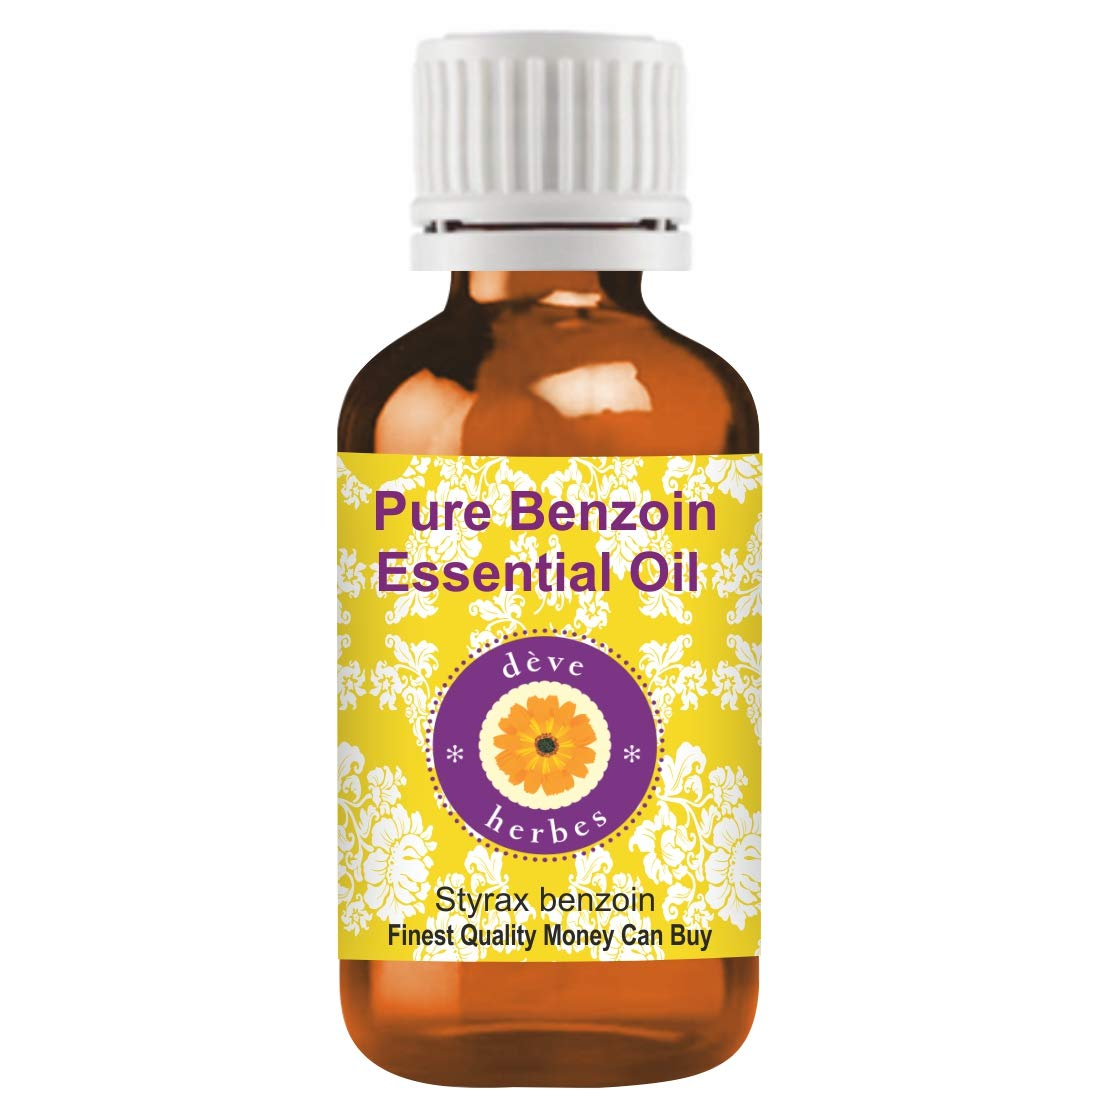 Deve Herbes Pure Benzoin Essential Oil (Styrax benzoin) 100% Natural  Therapeutic Grade Steam